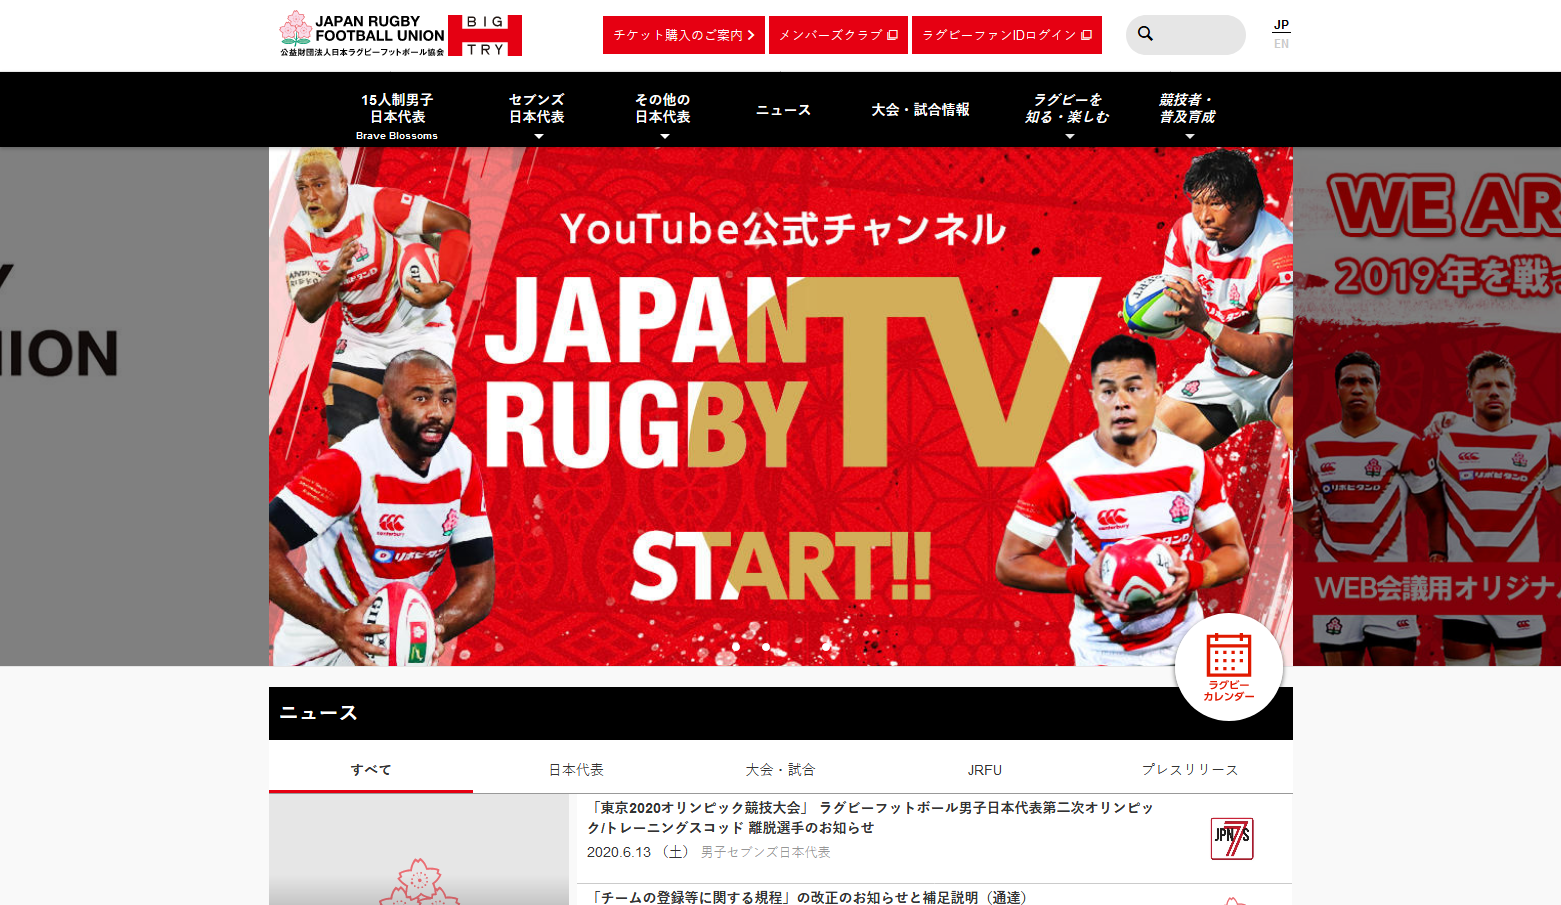 Japan Rugby Football Union